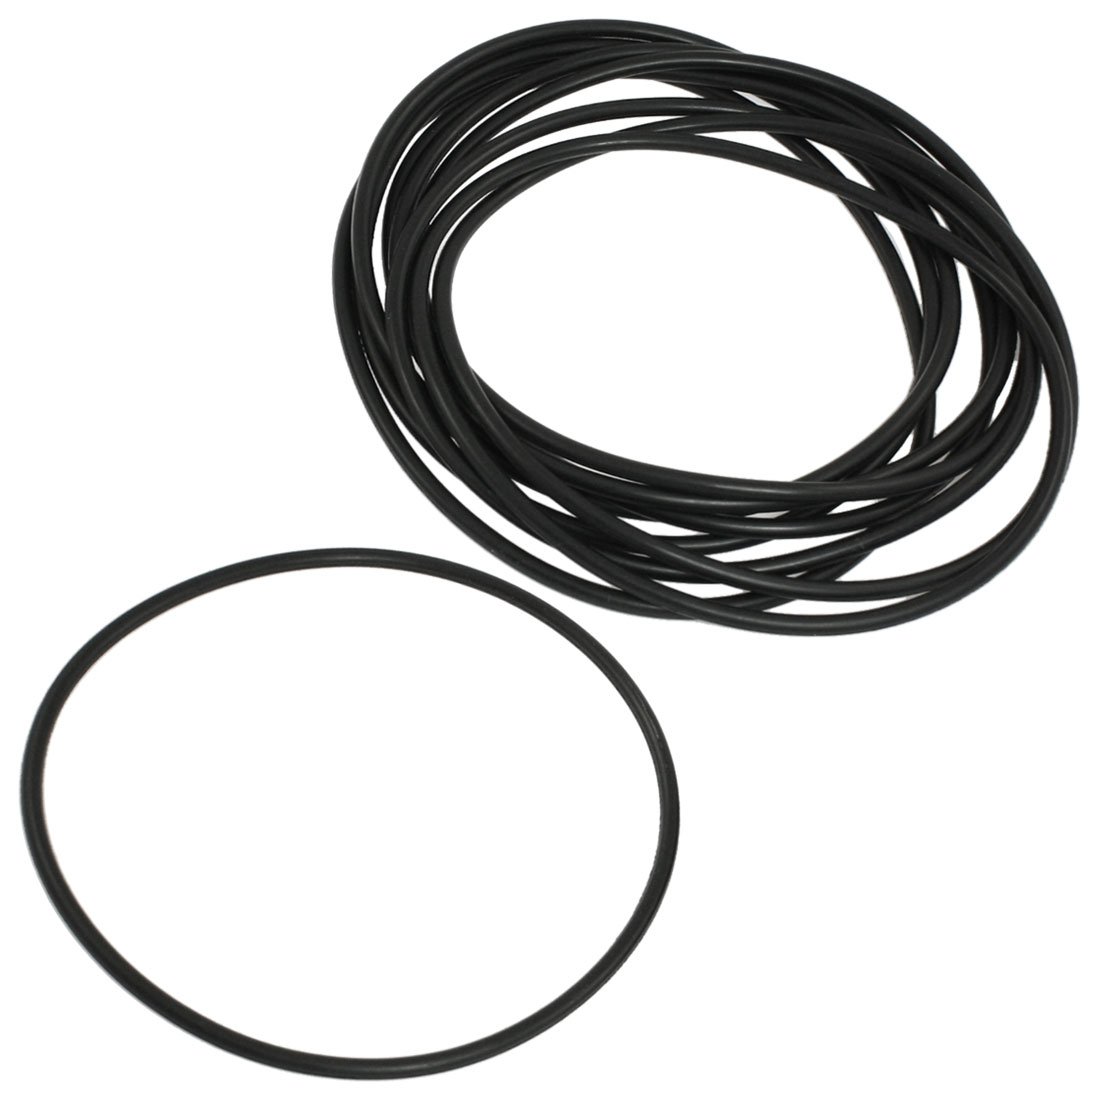 10 Pcs Black Nitrile Rubber O Ring NBR Seals Gaskets 135mm x 4mm